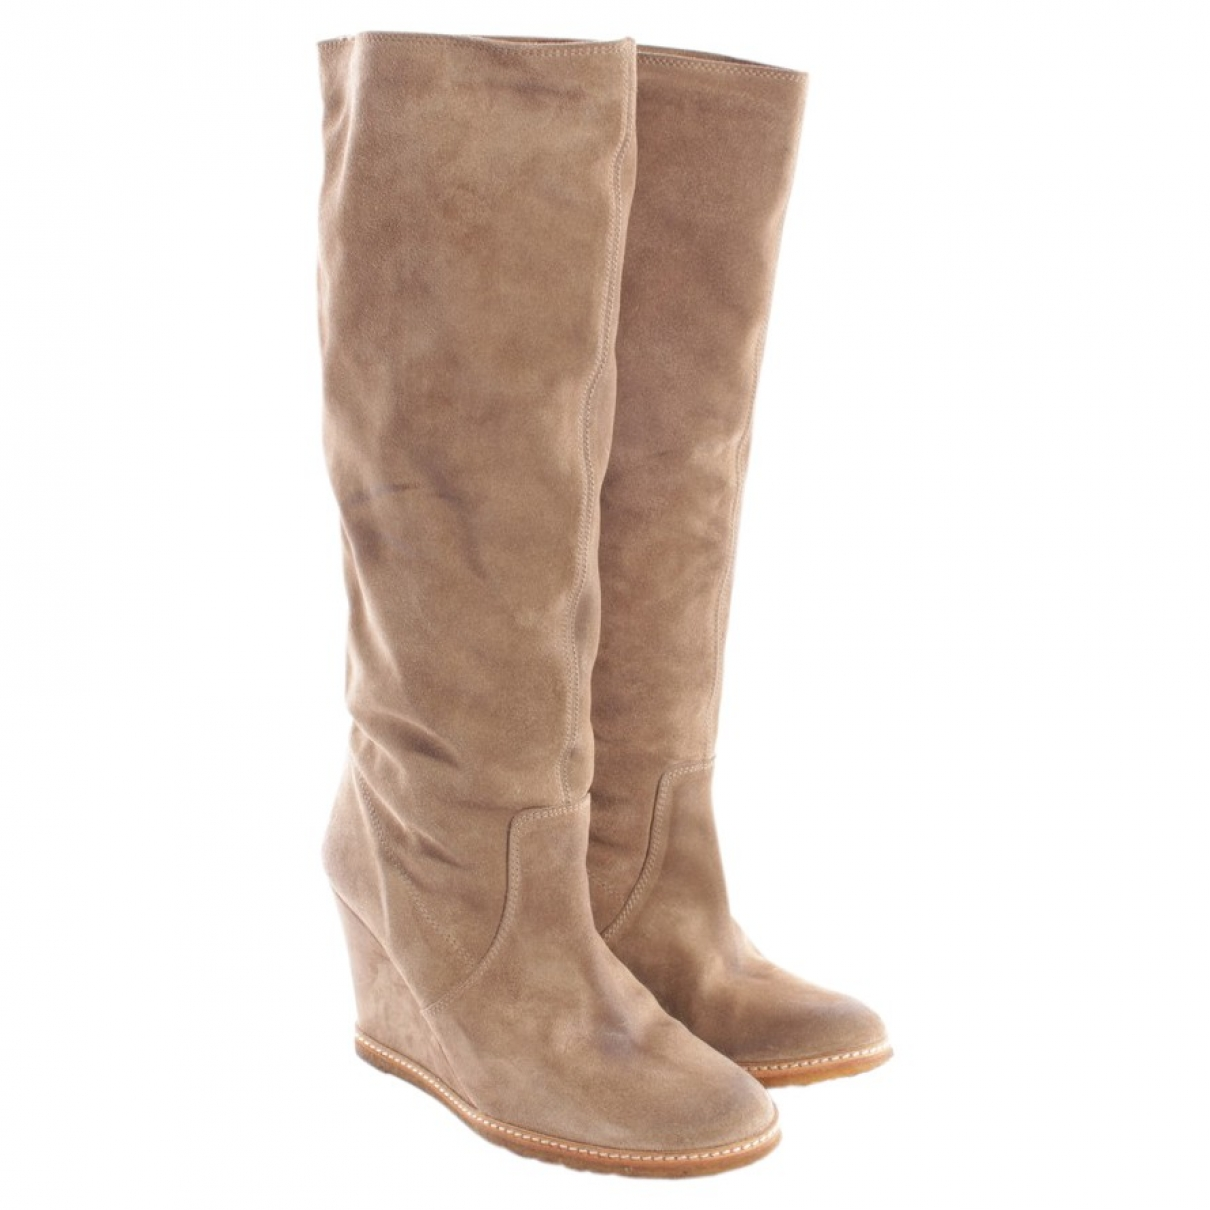 N.d.c. Made By Hand \N Beige Leather Boots for Women 37 EU